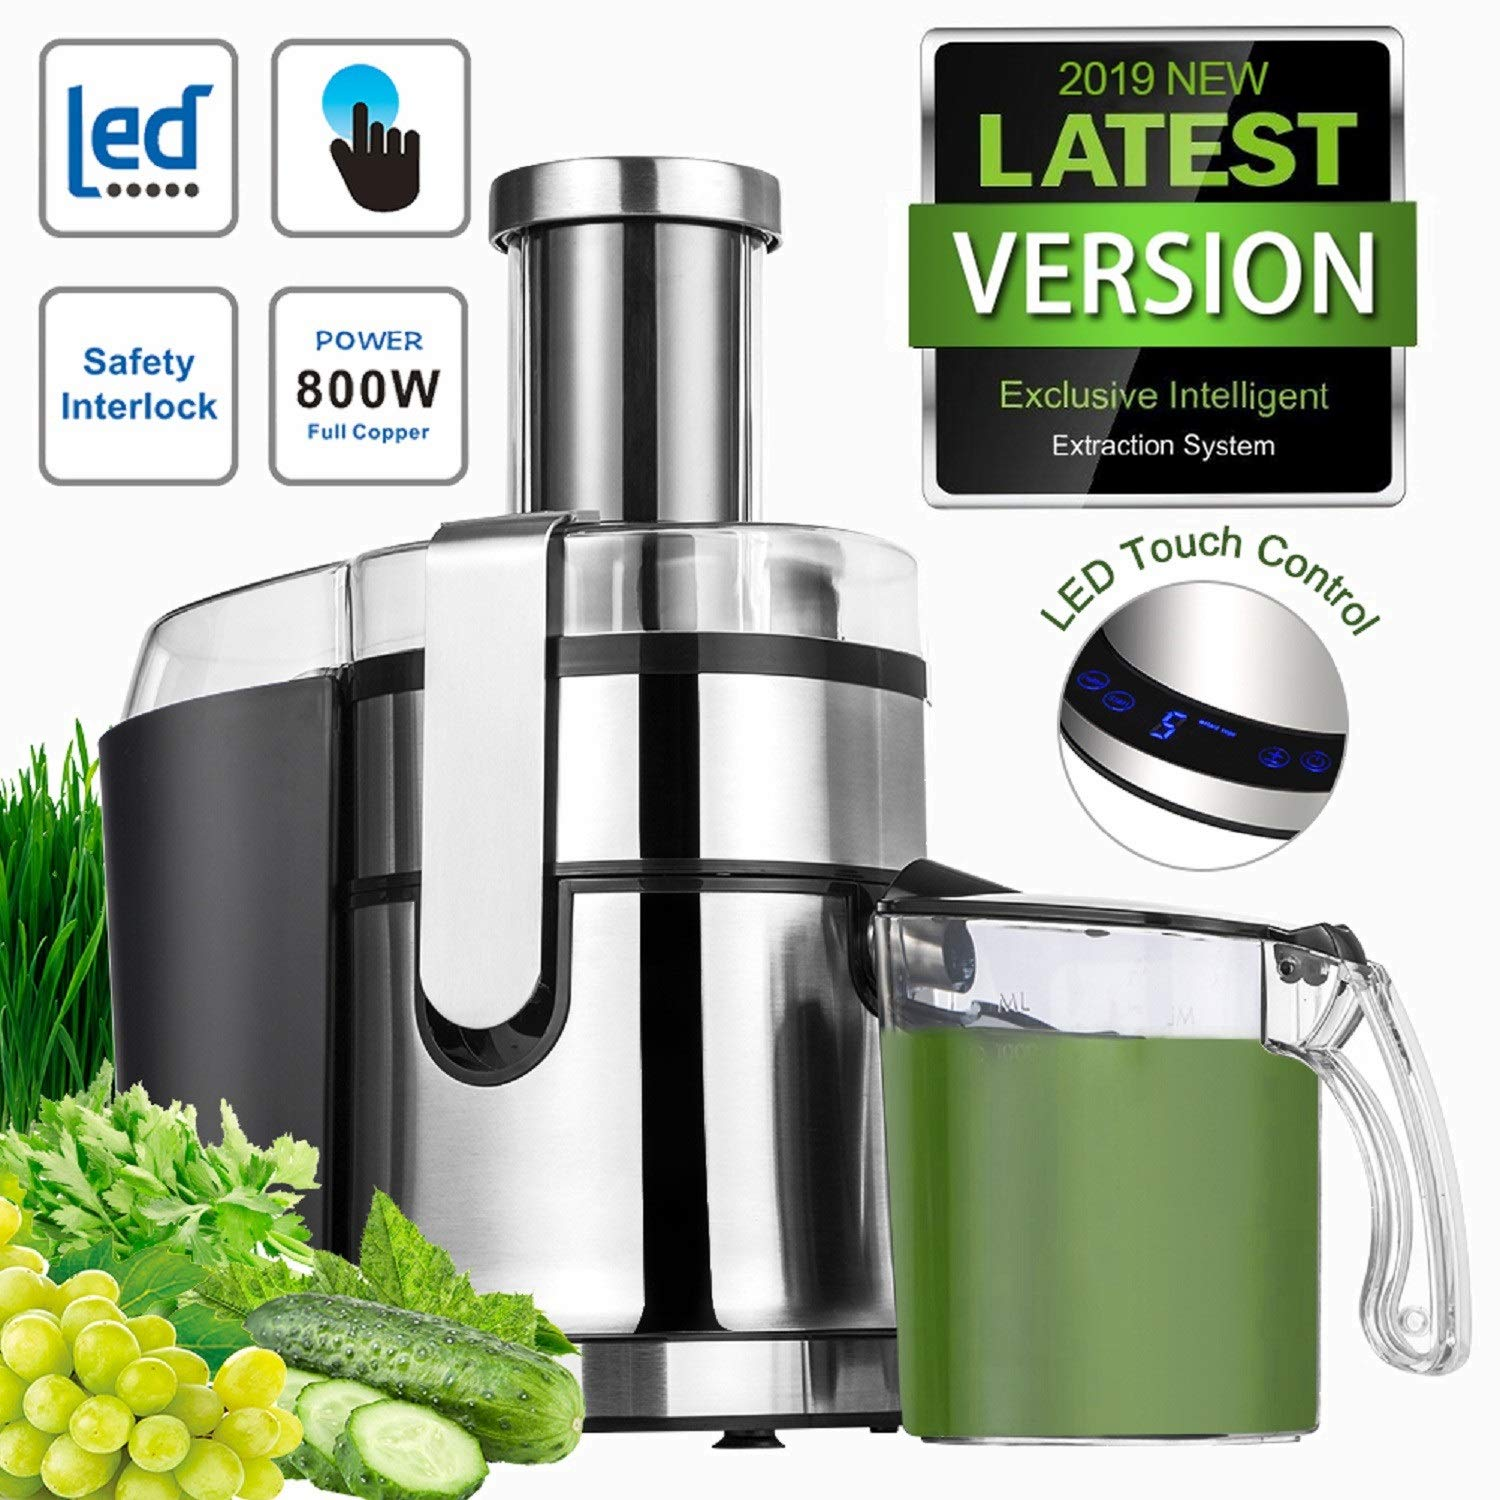 Extractor,Wide Mouth Masticating Juicer Machine LED Touch Control Function with Juice Jug,Anti-drip,800W-High Nutrient Fruit & Vegetable 15.7 x 10.6 x 7.8 (LED Touch Control)